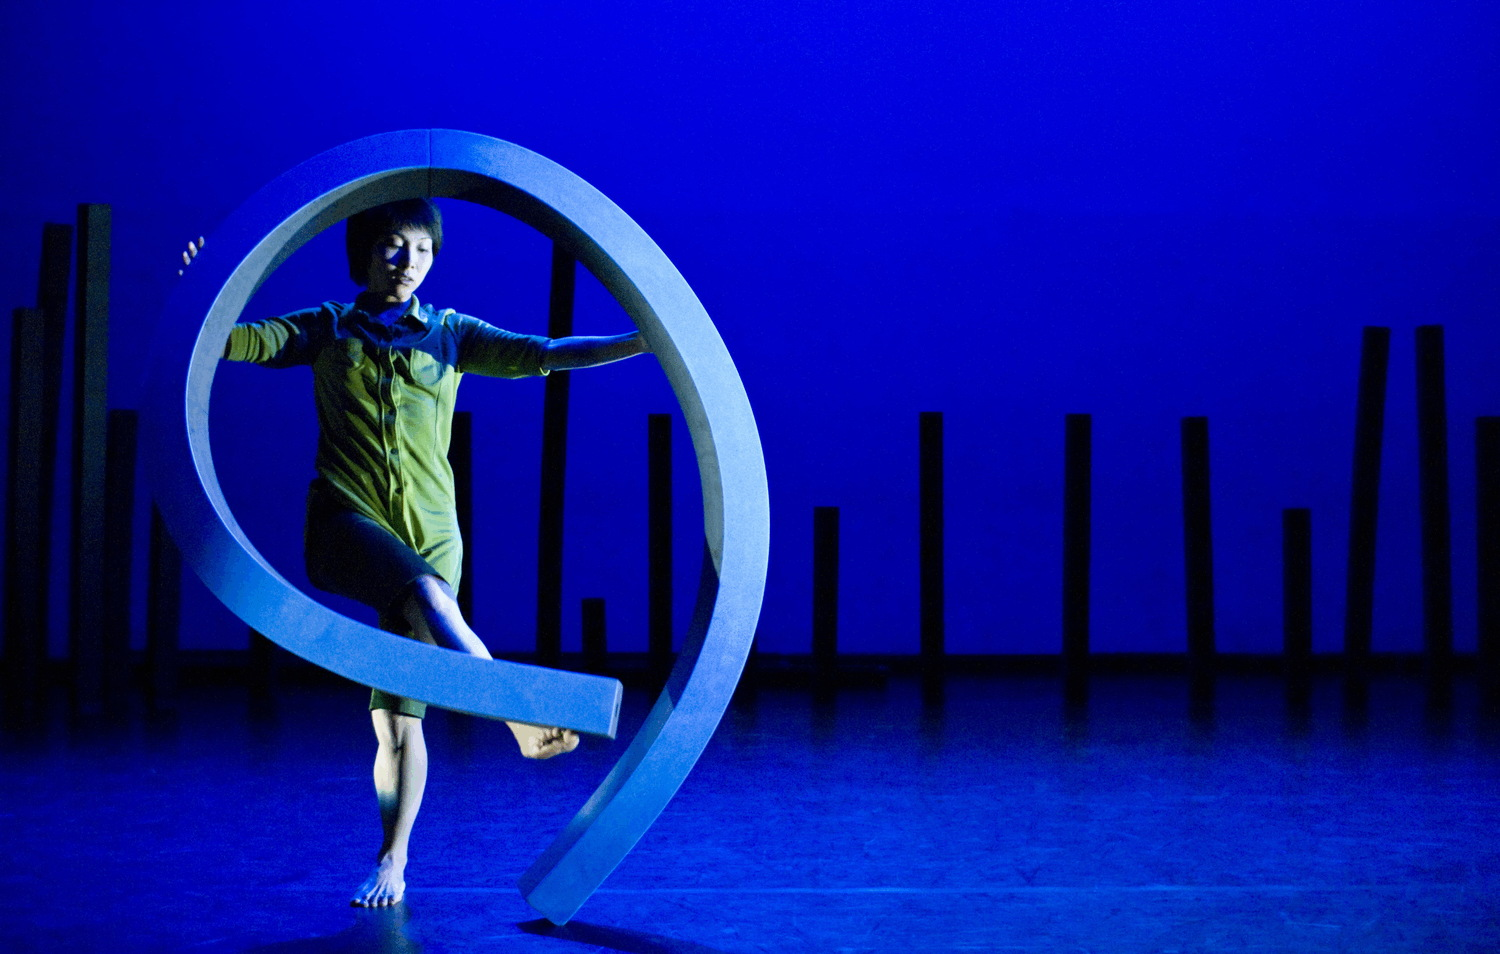 A dancer bends a long blue foam line into a beautiful shape, tilting one end up with her pointed foot against a blue backdrop